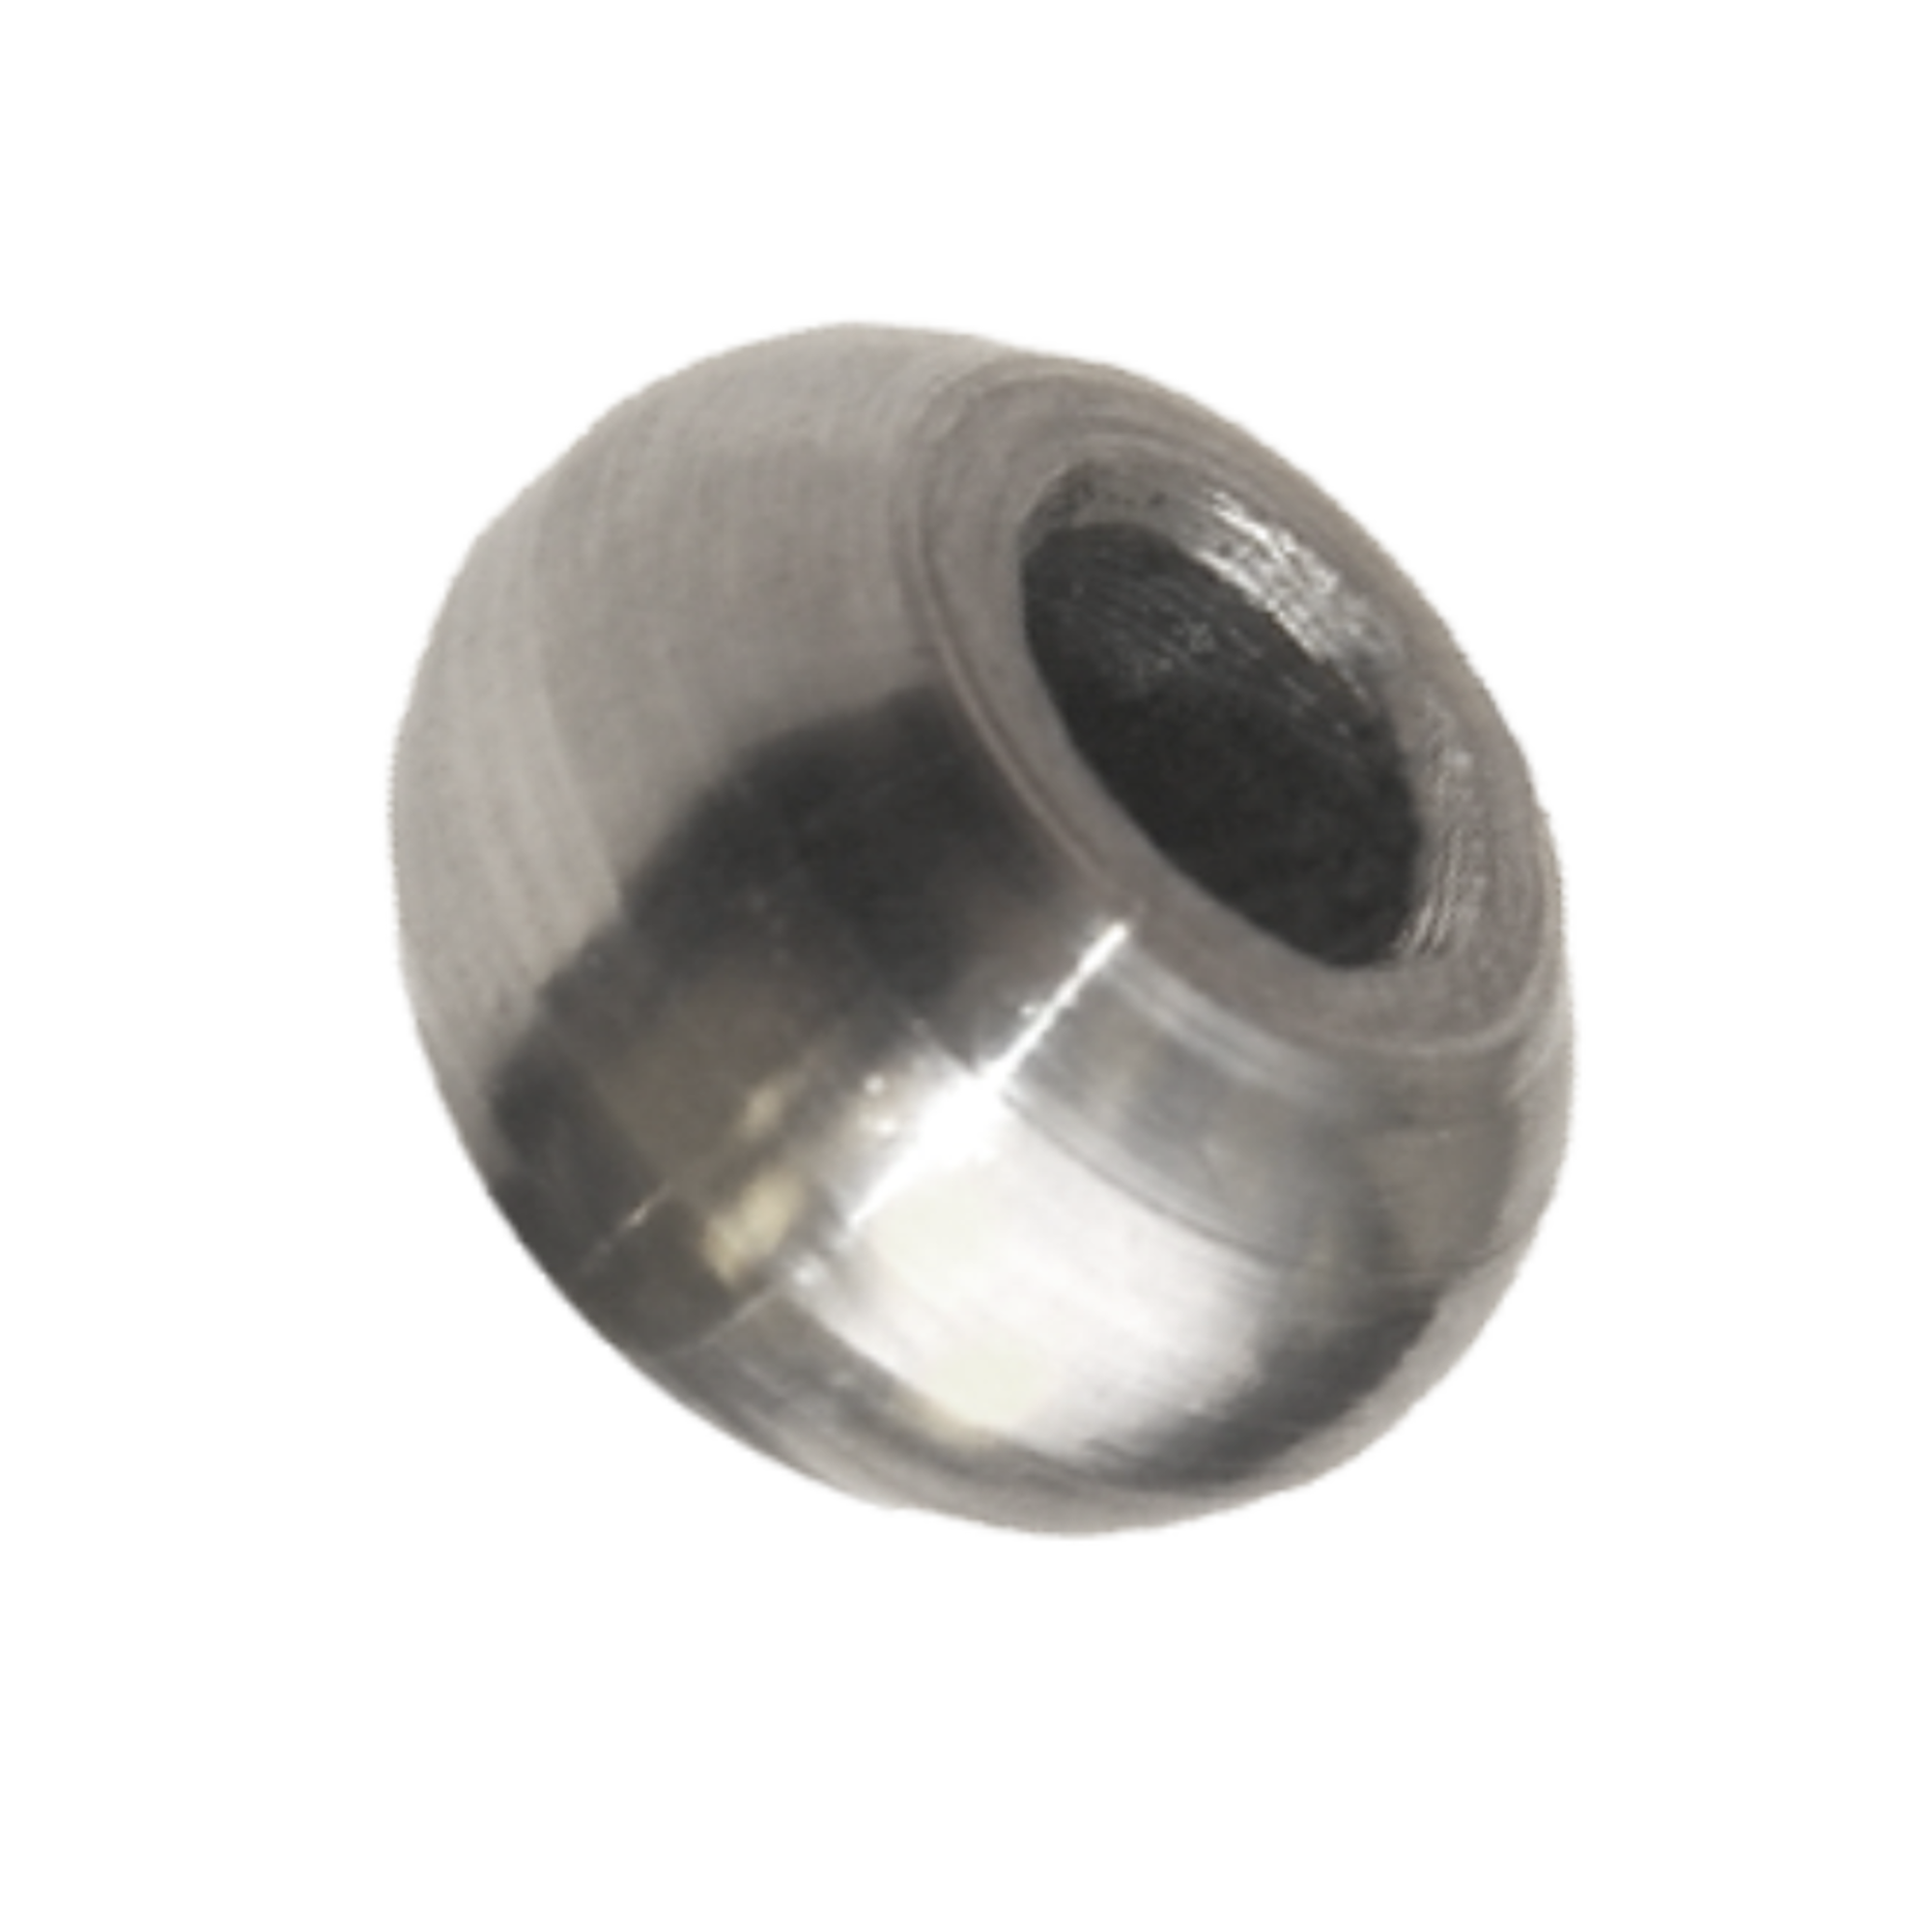 BA3-6 Stainless Swage Ball Fitting 5mm